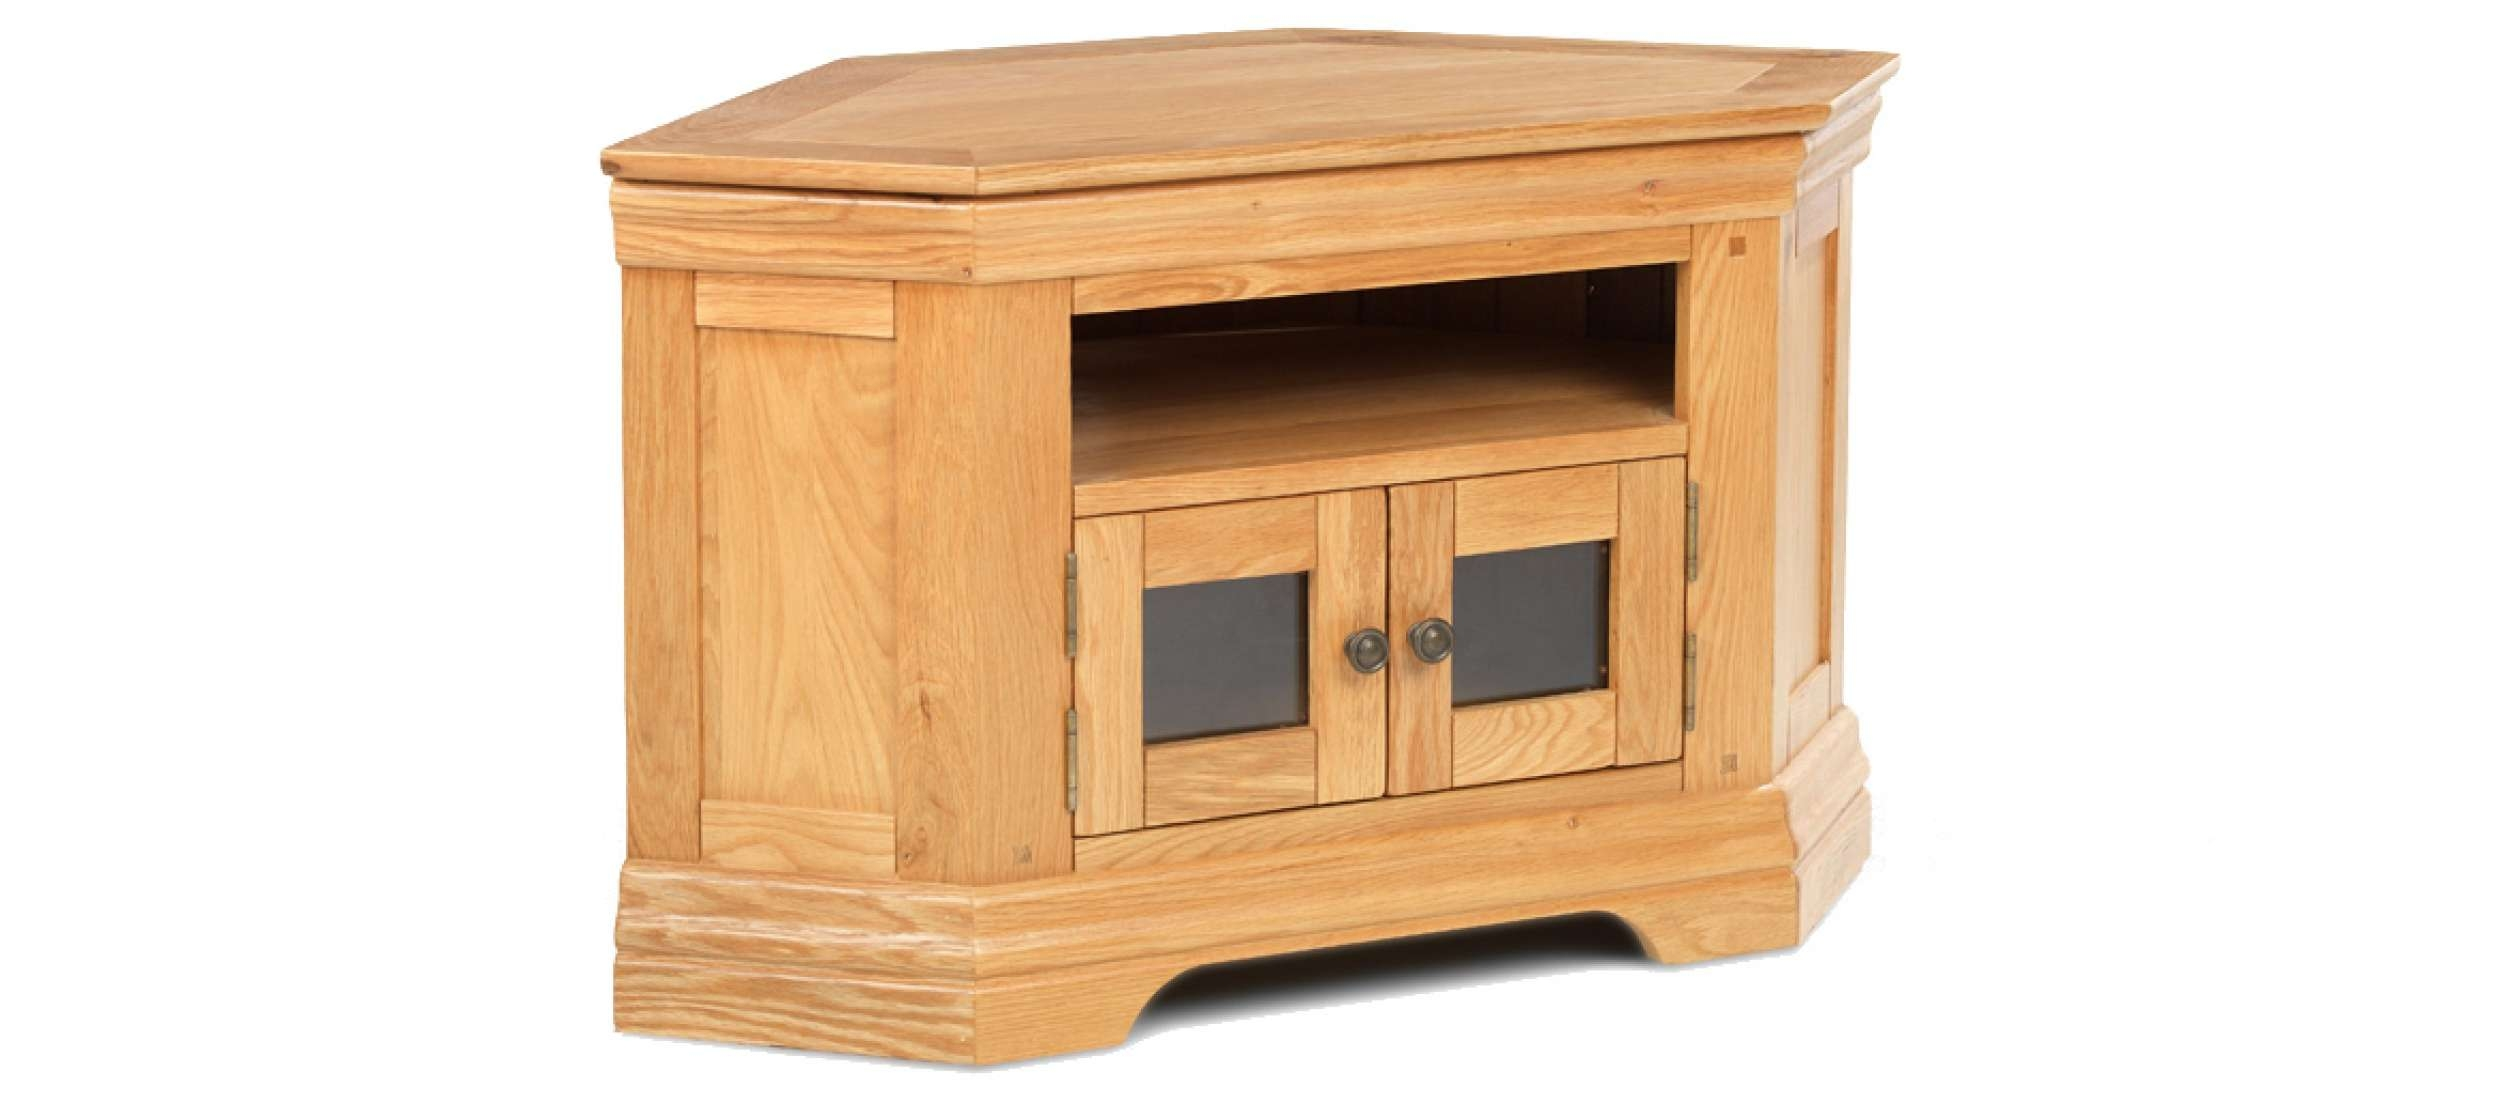 Constance Oak Corner Tv Cabinet | Quercus Living For Small Oak Corner Tv Stands (View 4 of 15)